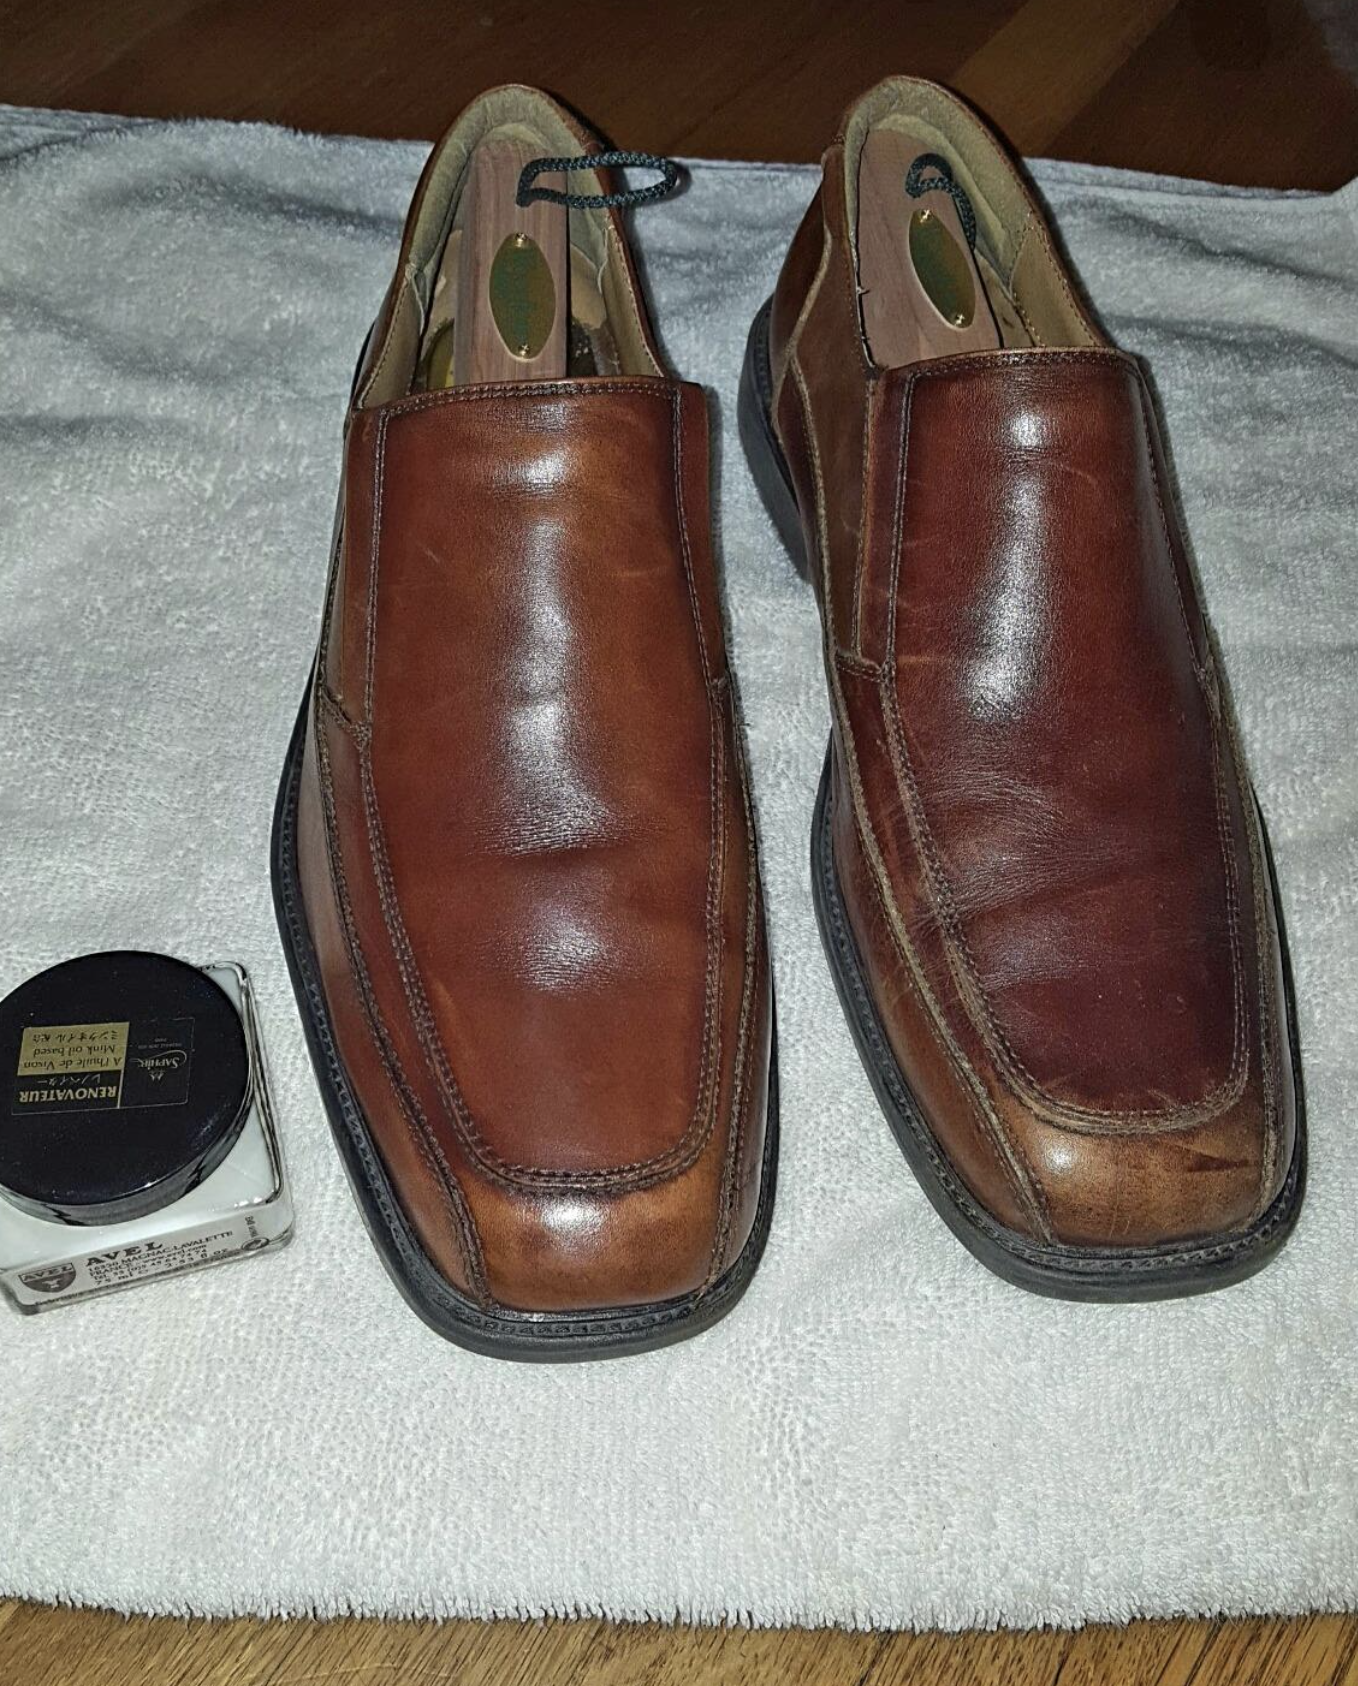 a jar of leather conditioner next to a pair of brown leather shoes, with the one on the left looking more vibrant and showing less scuffs than the right one after being treated with the conditioner